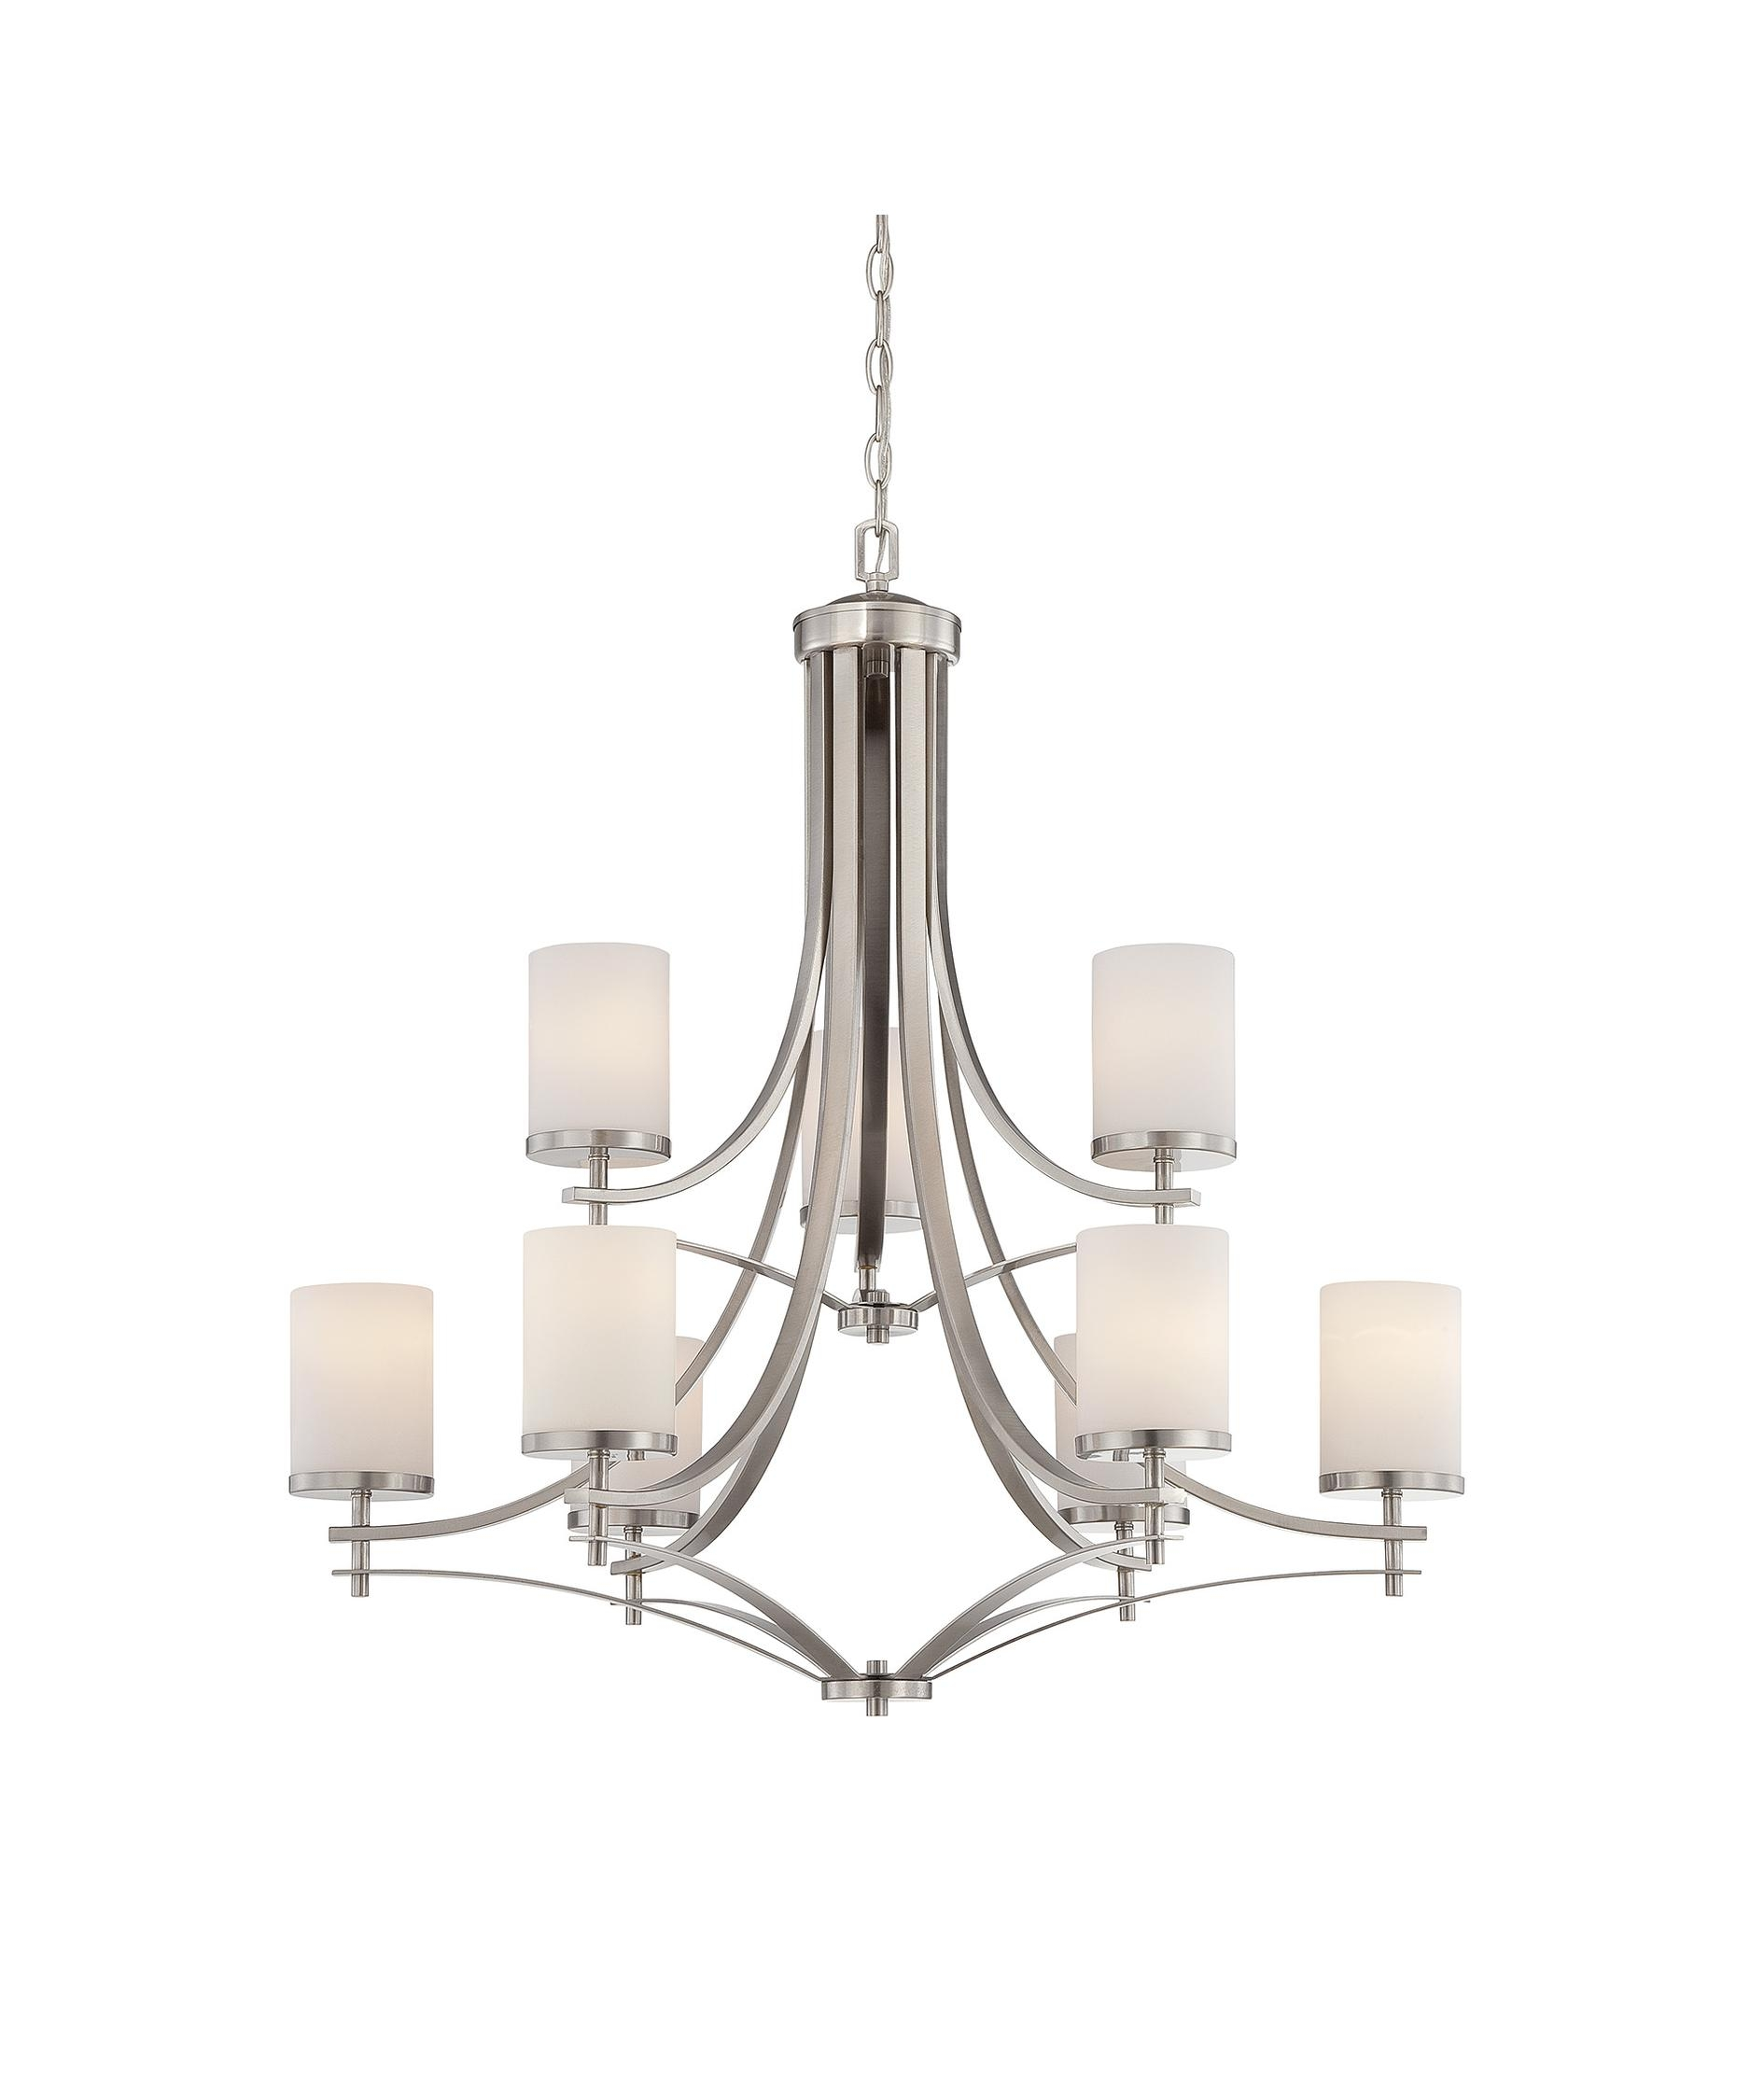 Savoy House 1 331 9 Colton 33 Inch Wide 9 Light Chandelier Pertaining To Savoy House Chandeliers (Image 14 of 25)